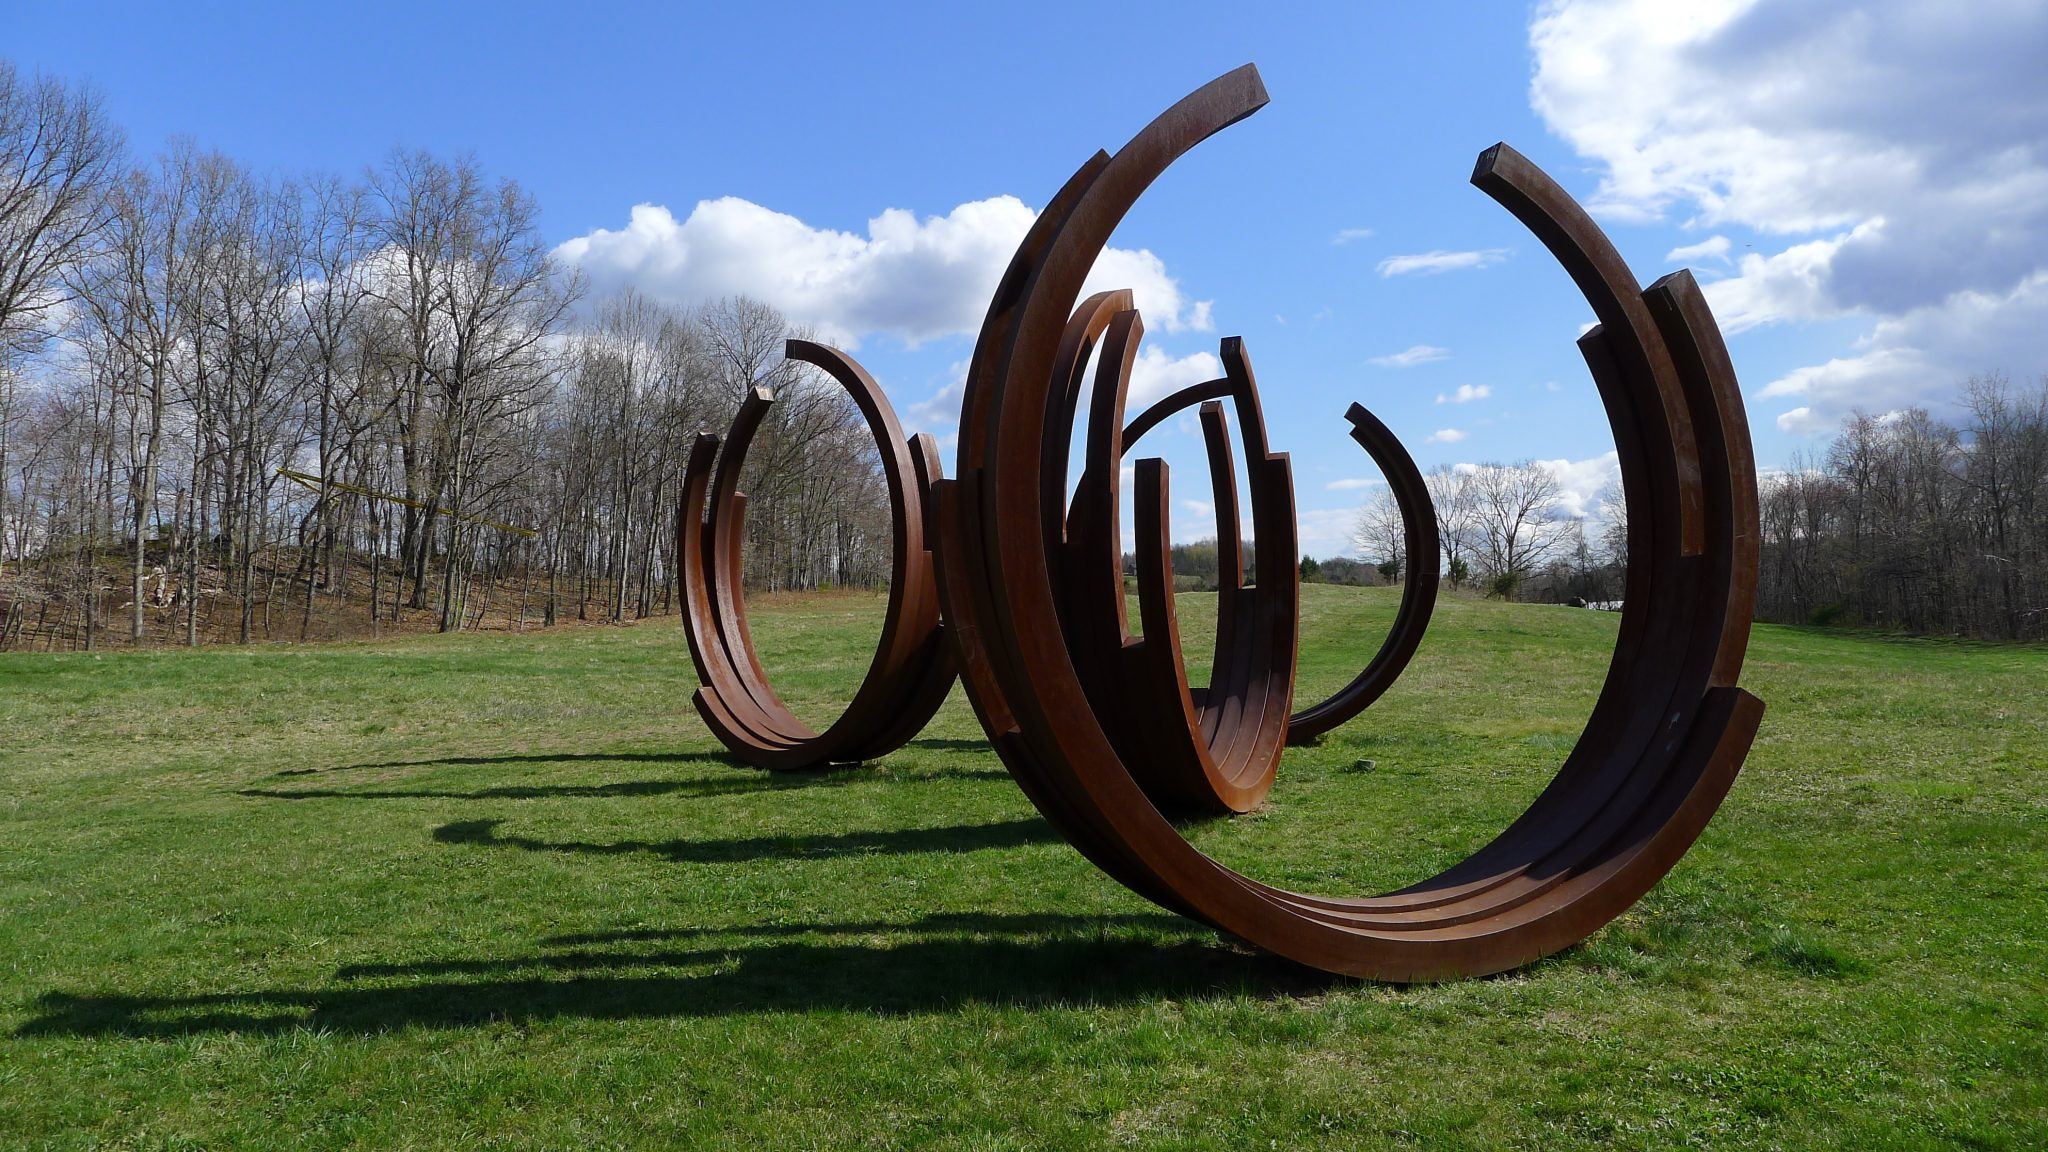 Explore Columbia County, New York State. The Fields at OMI in Columbia County, NY